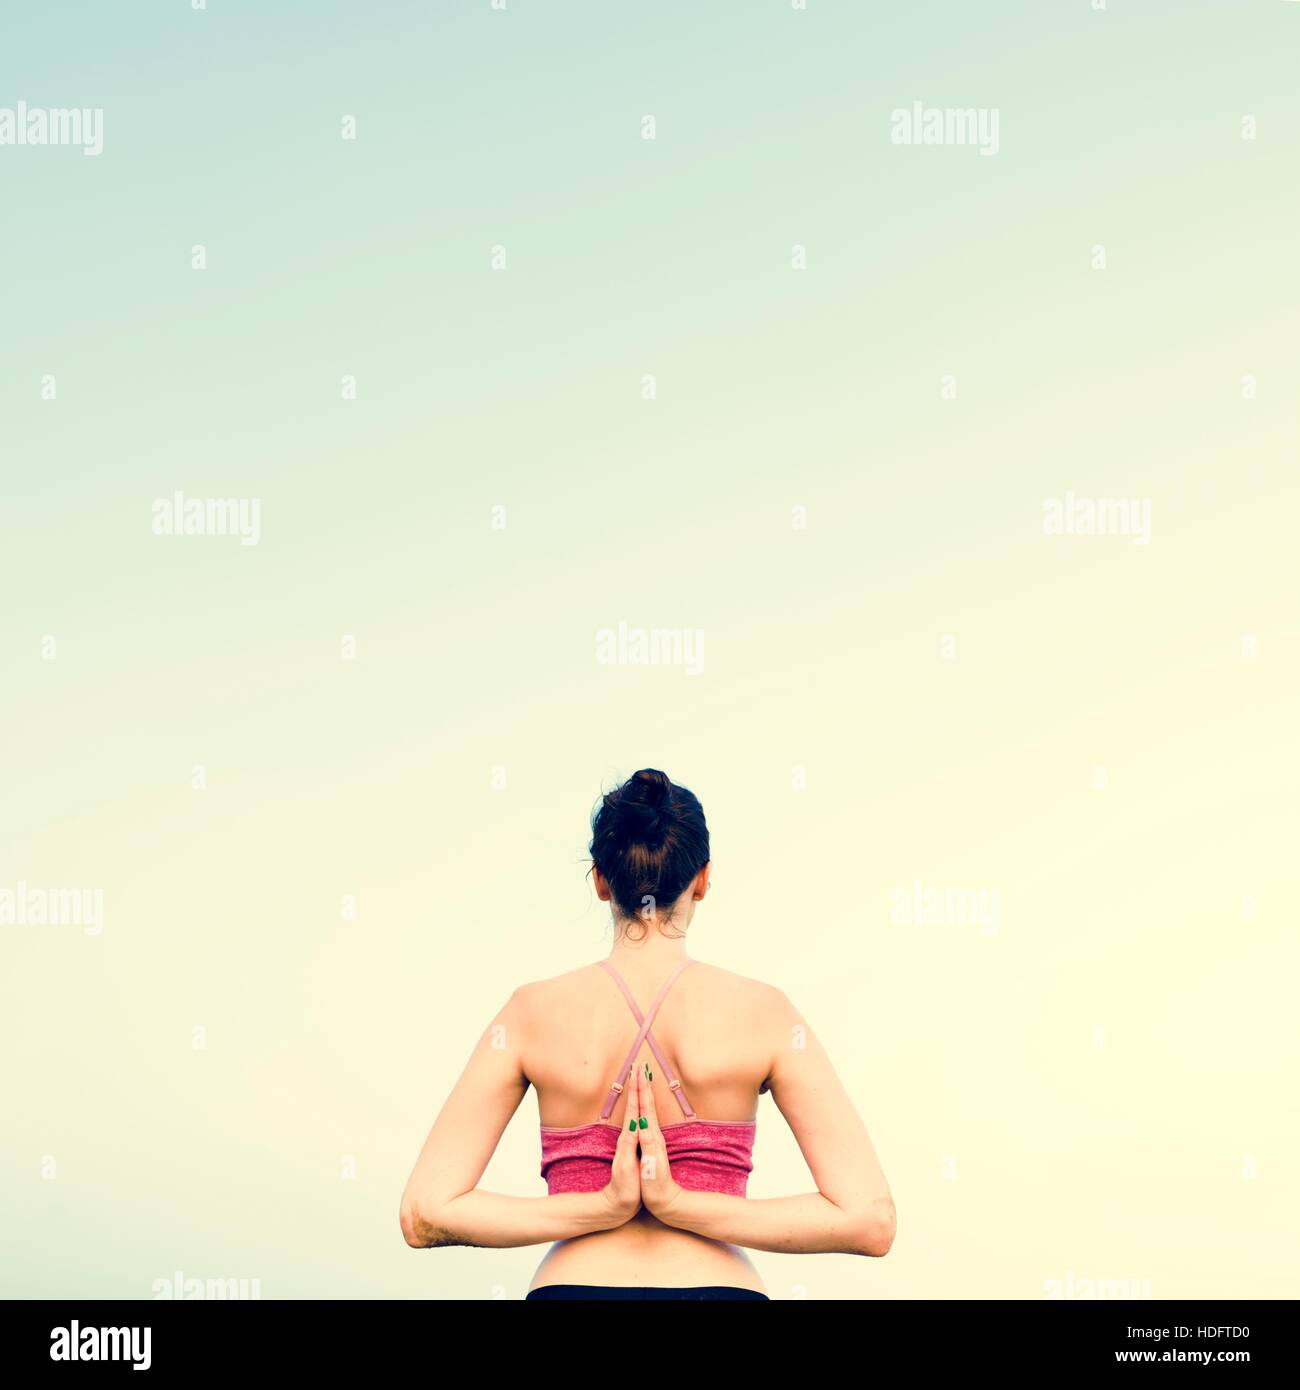 Yoga Meditation Concentration Peaceful Serene Relaxation Concept - Stock Image